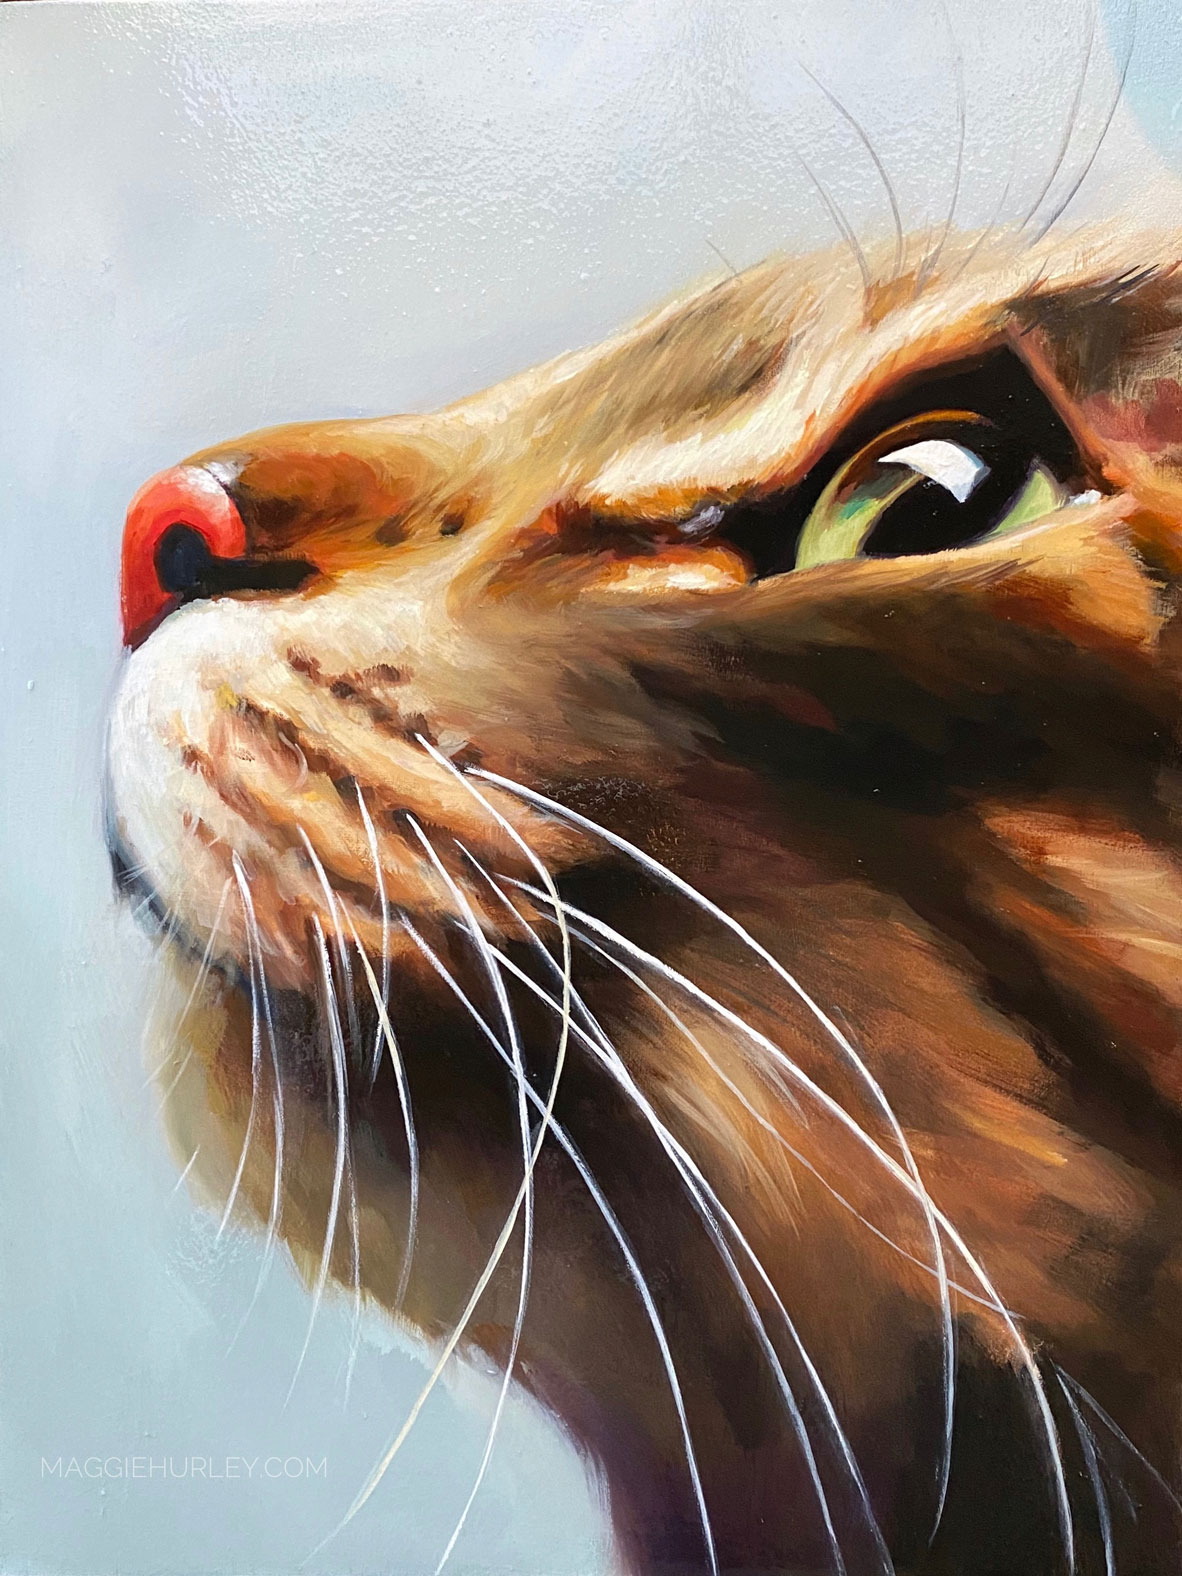 cat pet portrait by maggie hurley